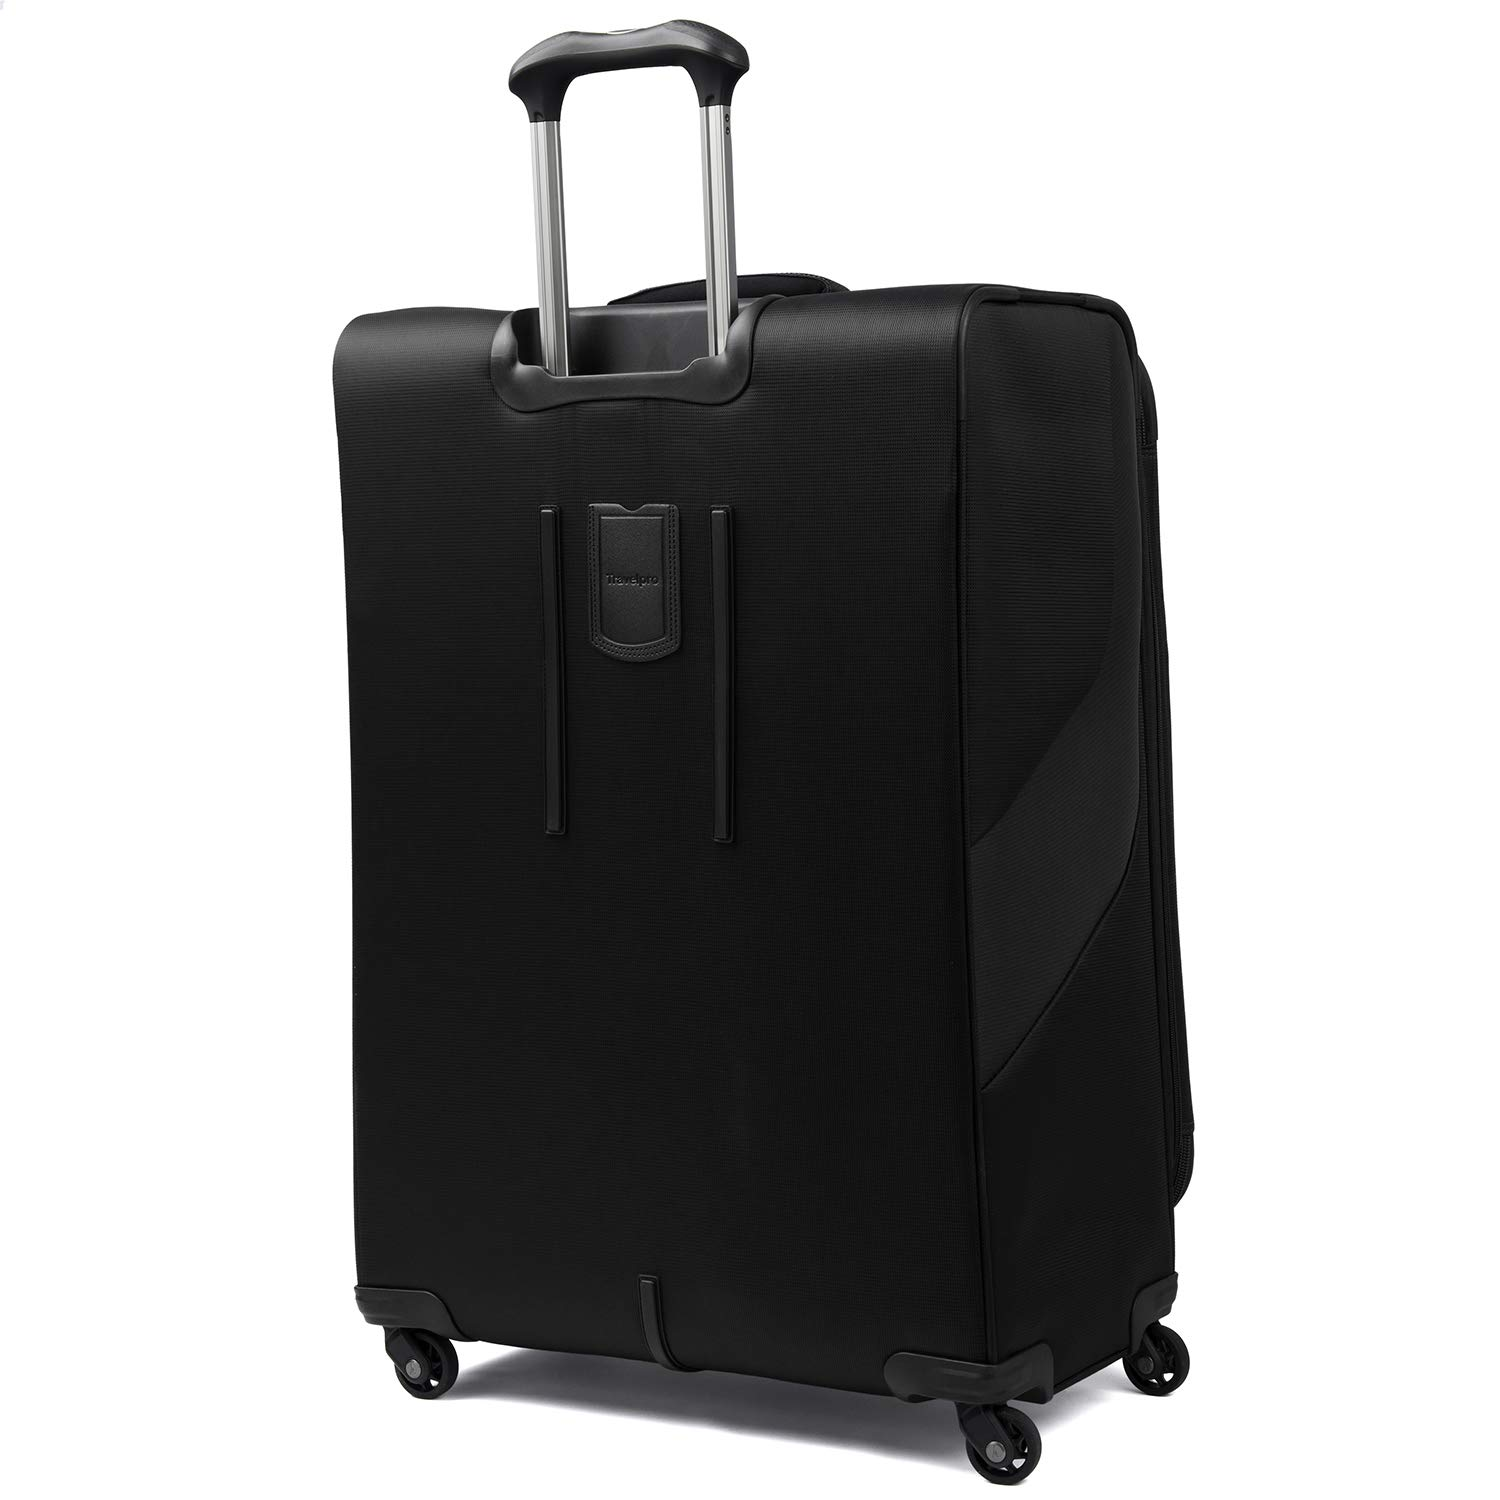 860122e07 Amazon.com | Travelpro Luggage Maxlite 4 Expandable 29 Inch Spinner, Black  | Carry-Ons